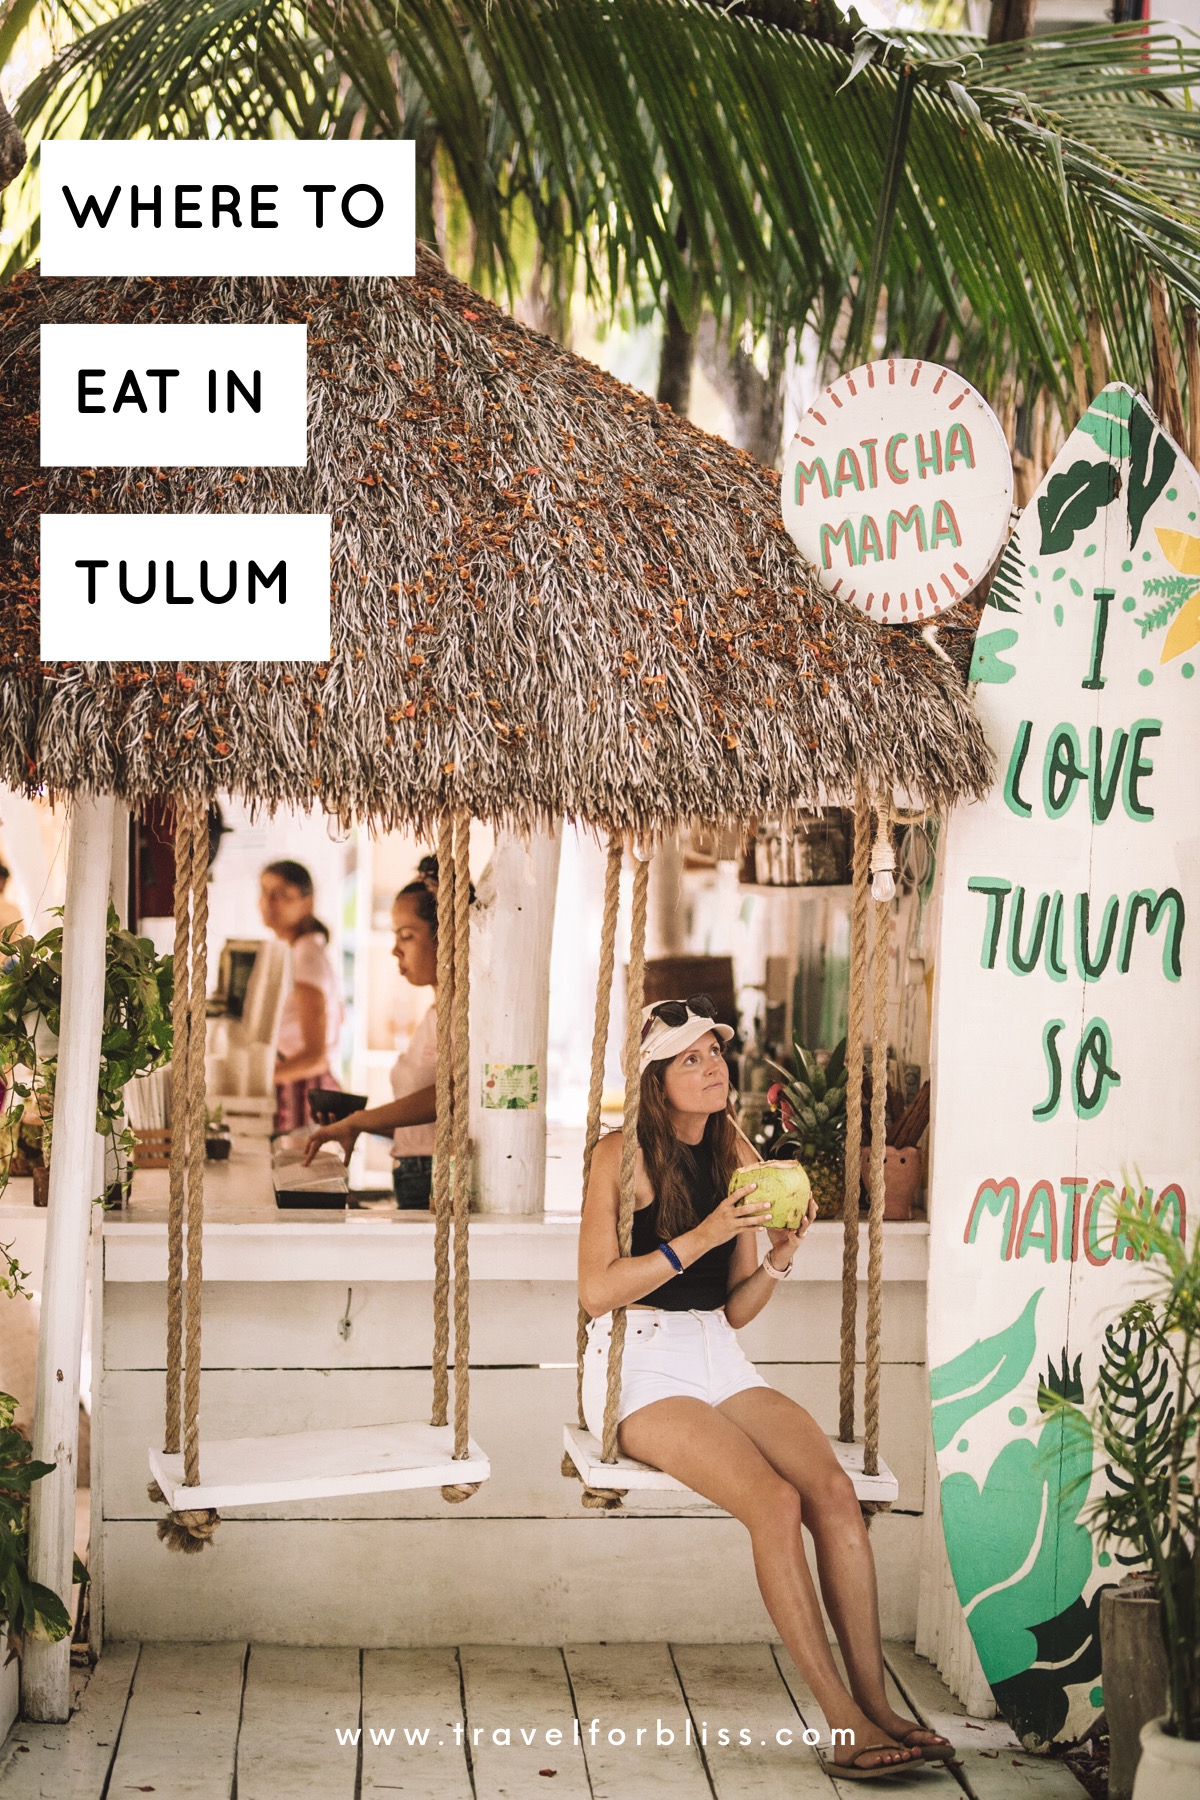 Travel guide for where to eat in Tulum.